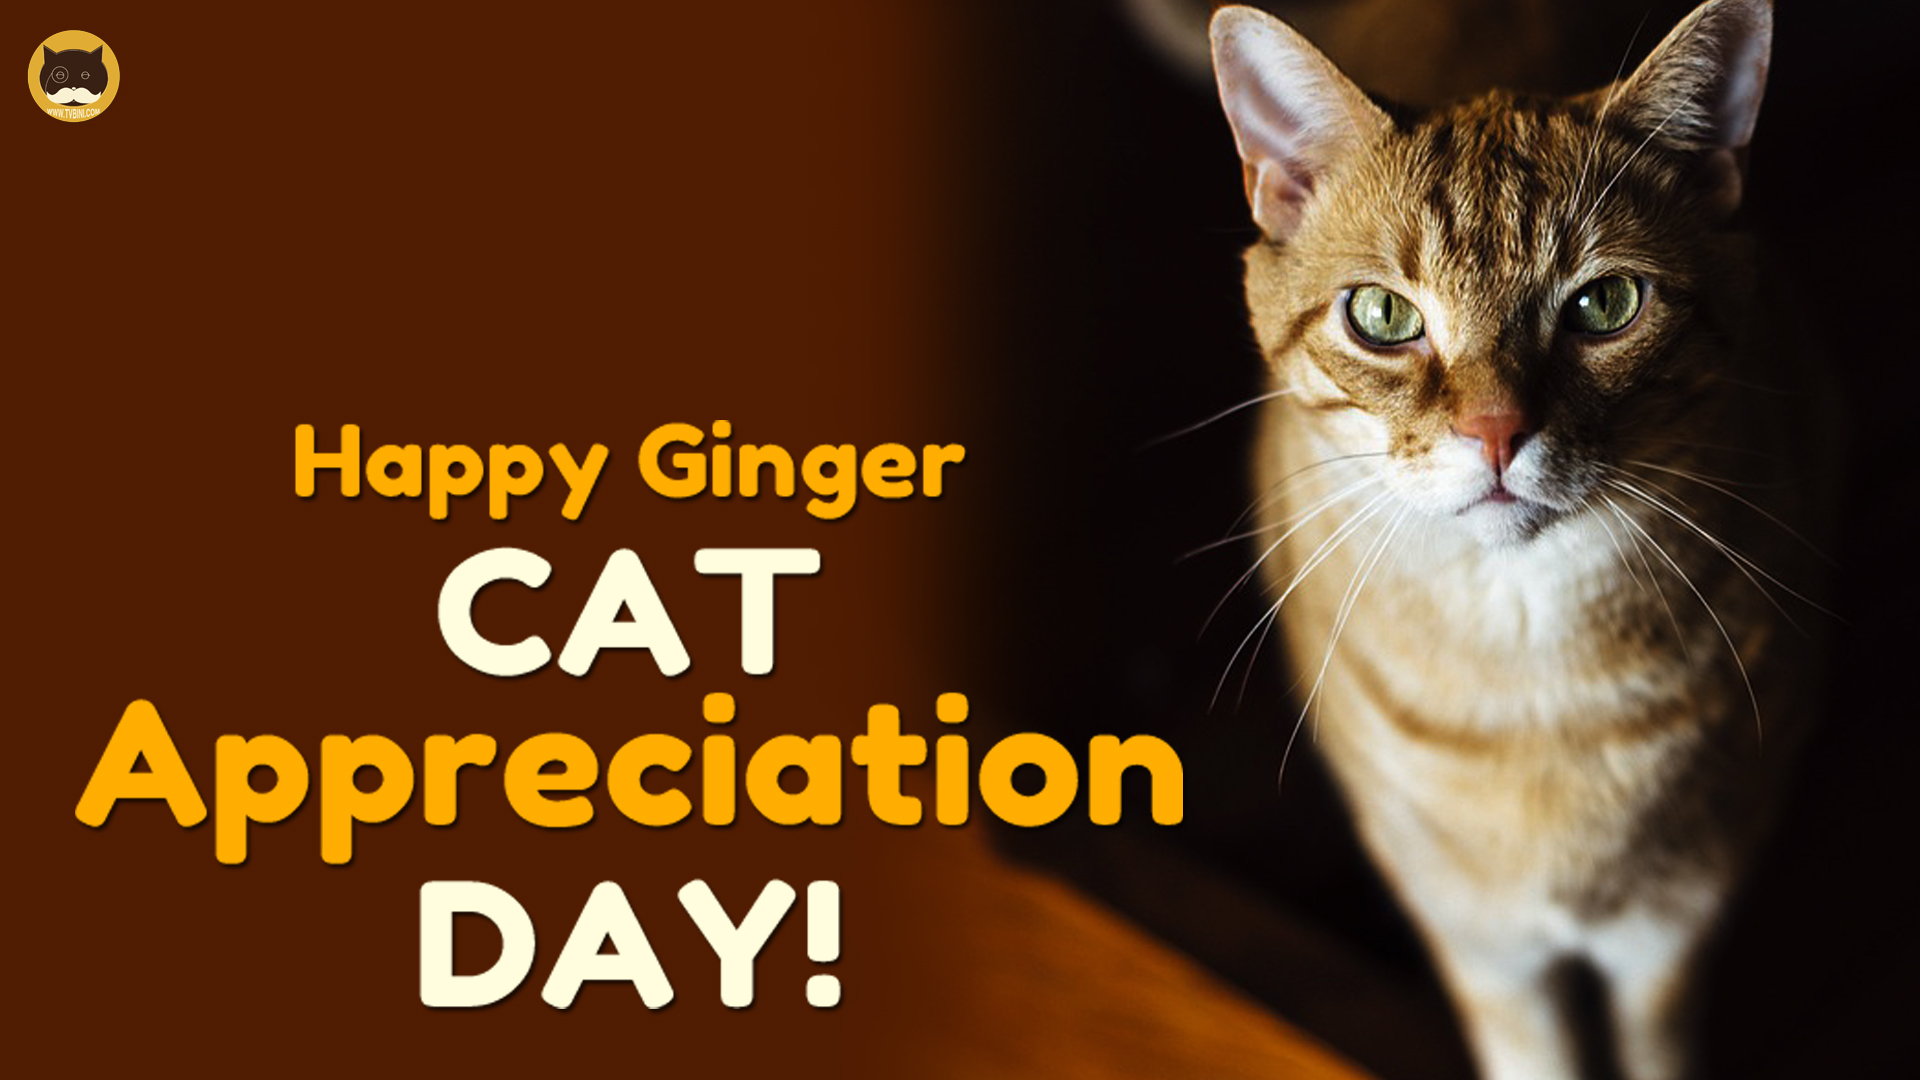 happy ginger cat appreciation day 01.jpg